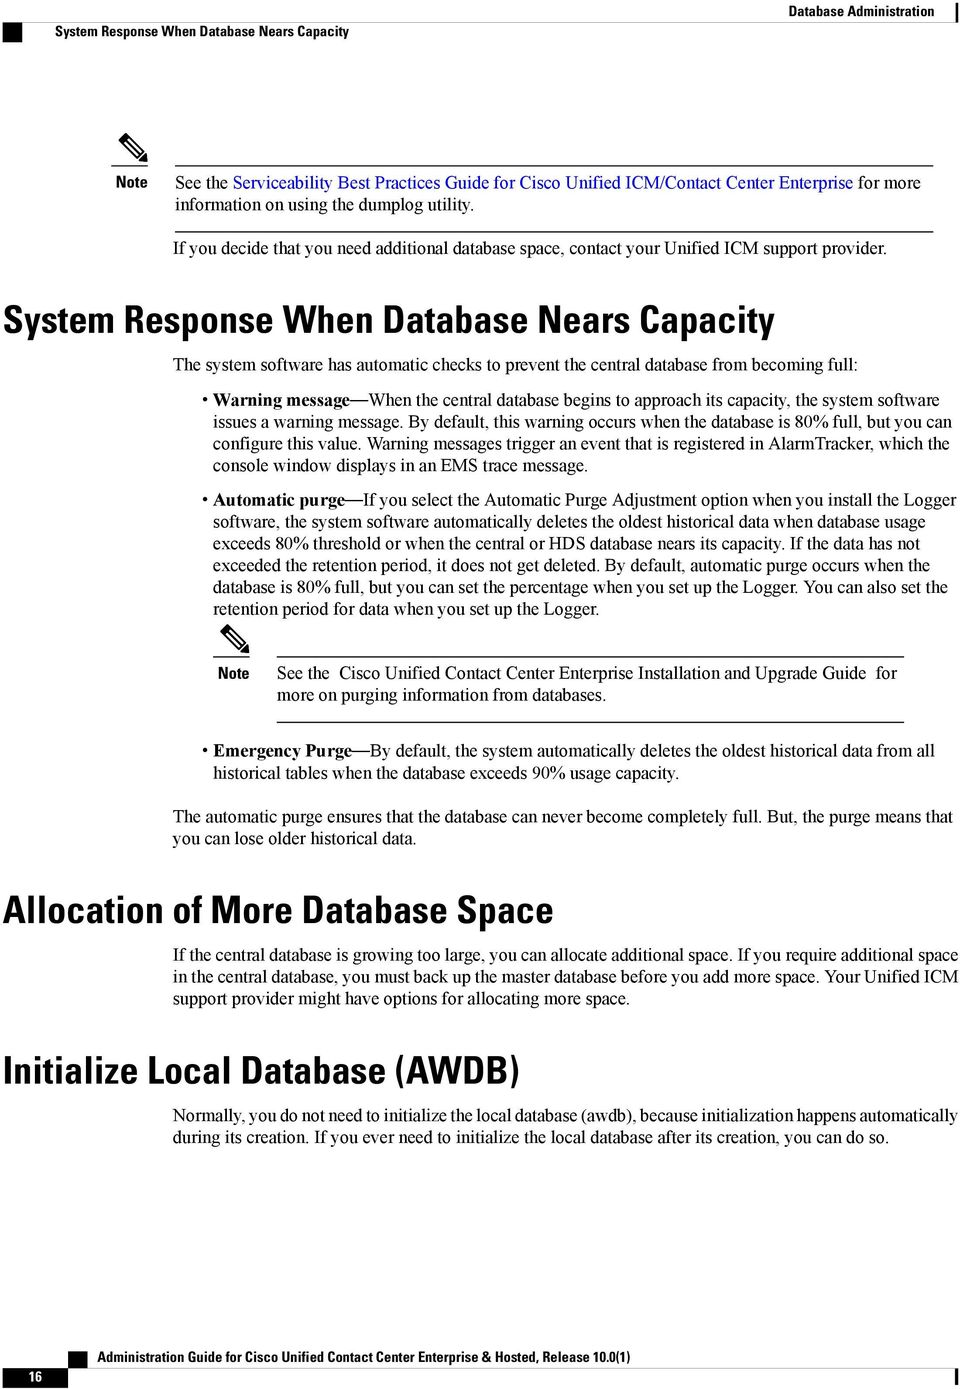 System Response When Database Nears Capacity The system software has automatic checks to prevent the central database from becoming full: Warning message When the central database begins to approach